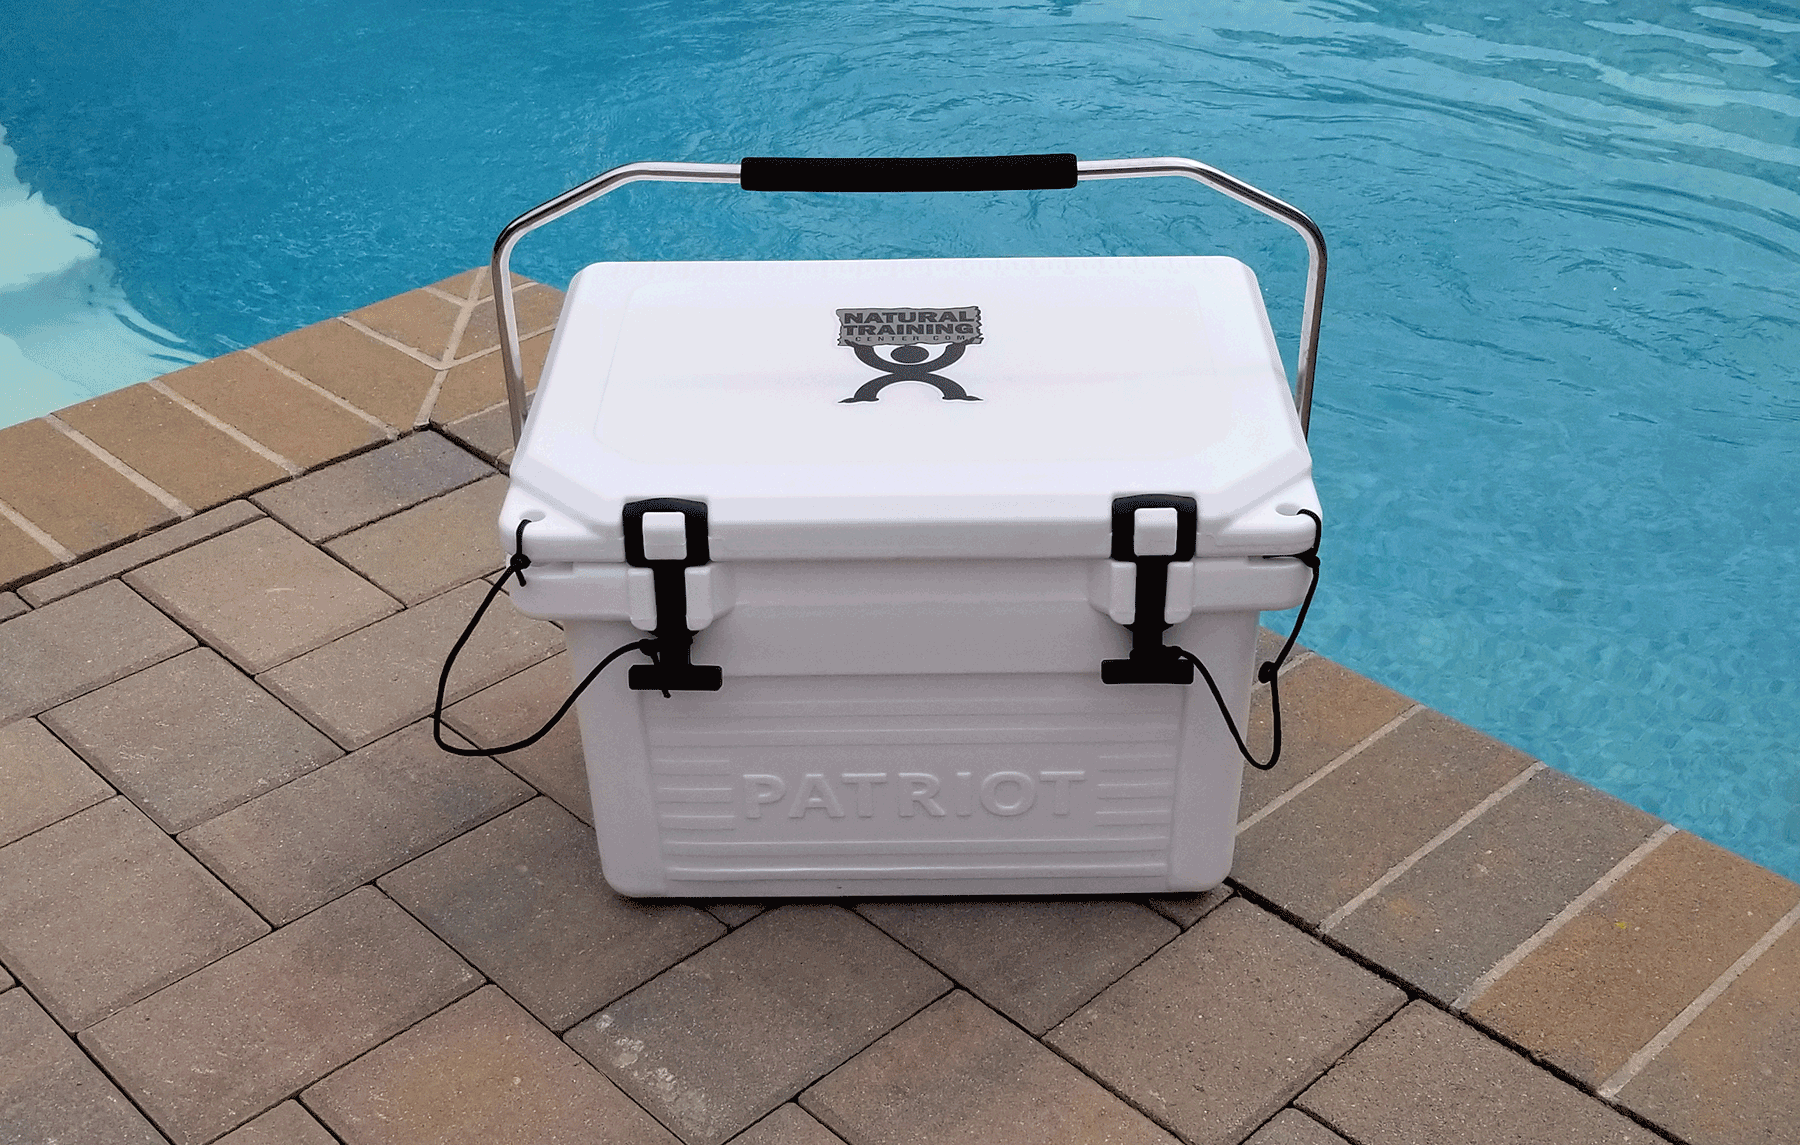 PATRIOT 20 Quart Cooler Review